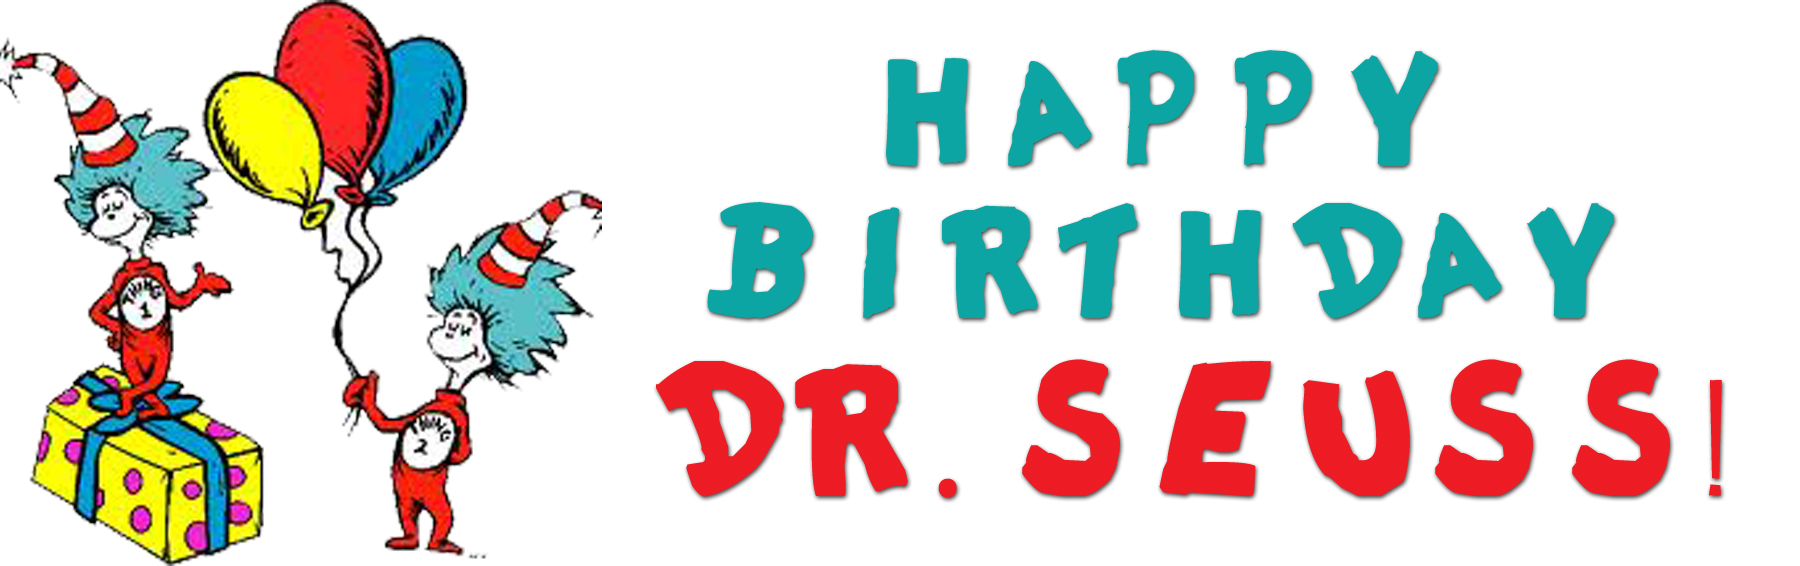 dr seuss happy birthday sign ; dr-seuss-clip-art-images-the-modern-blonde-the-modern-girl-should-be-both-glamorous-and